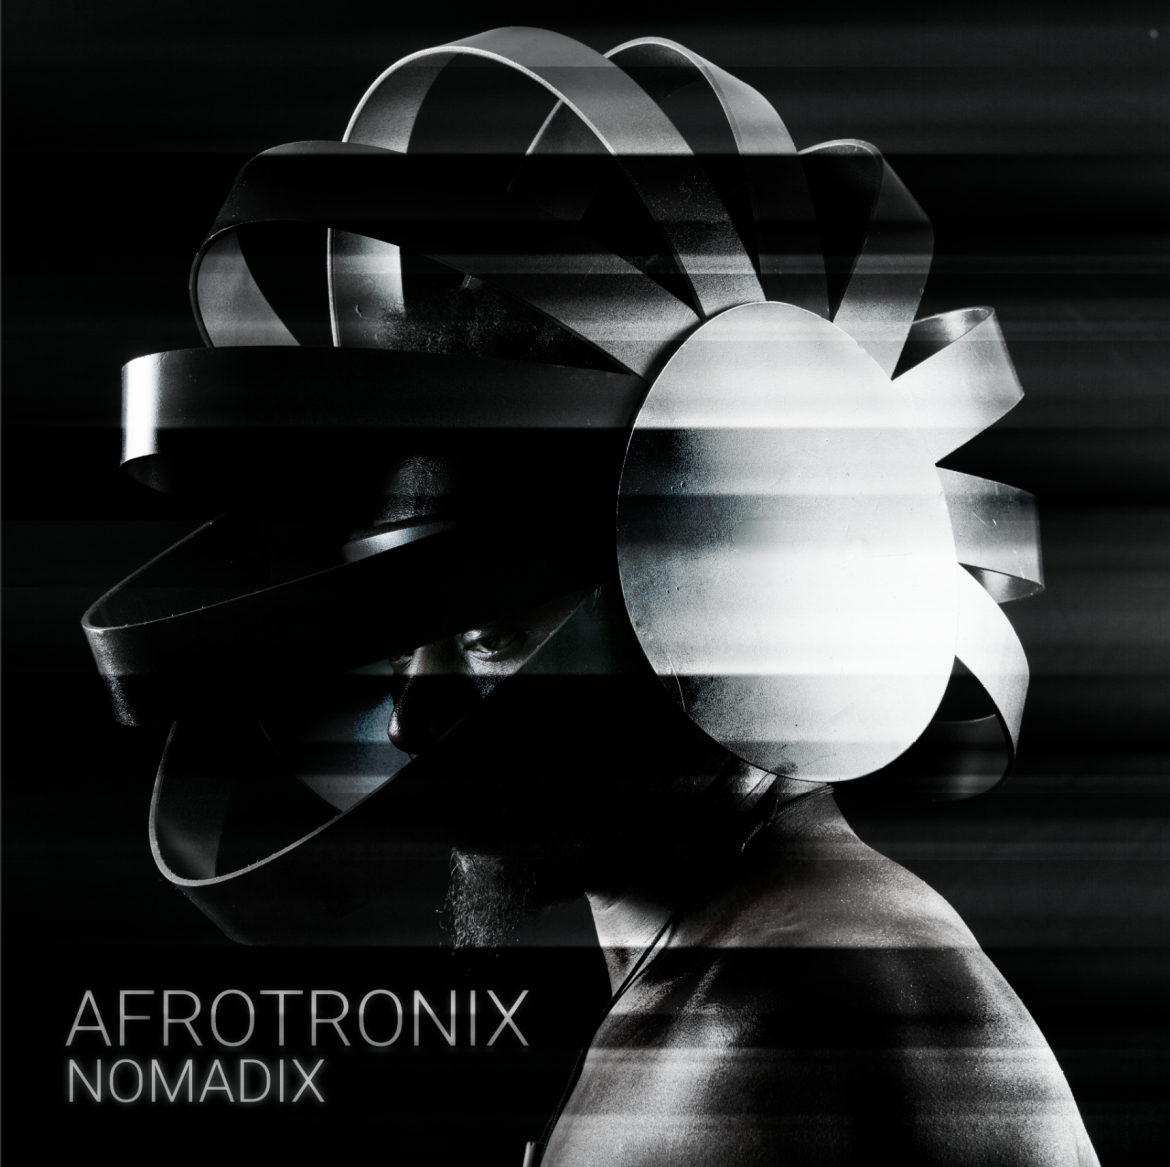 AFROTRONIX FIRST ALBUM PREVIEW